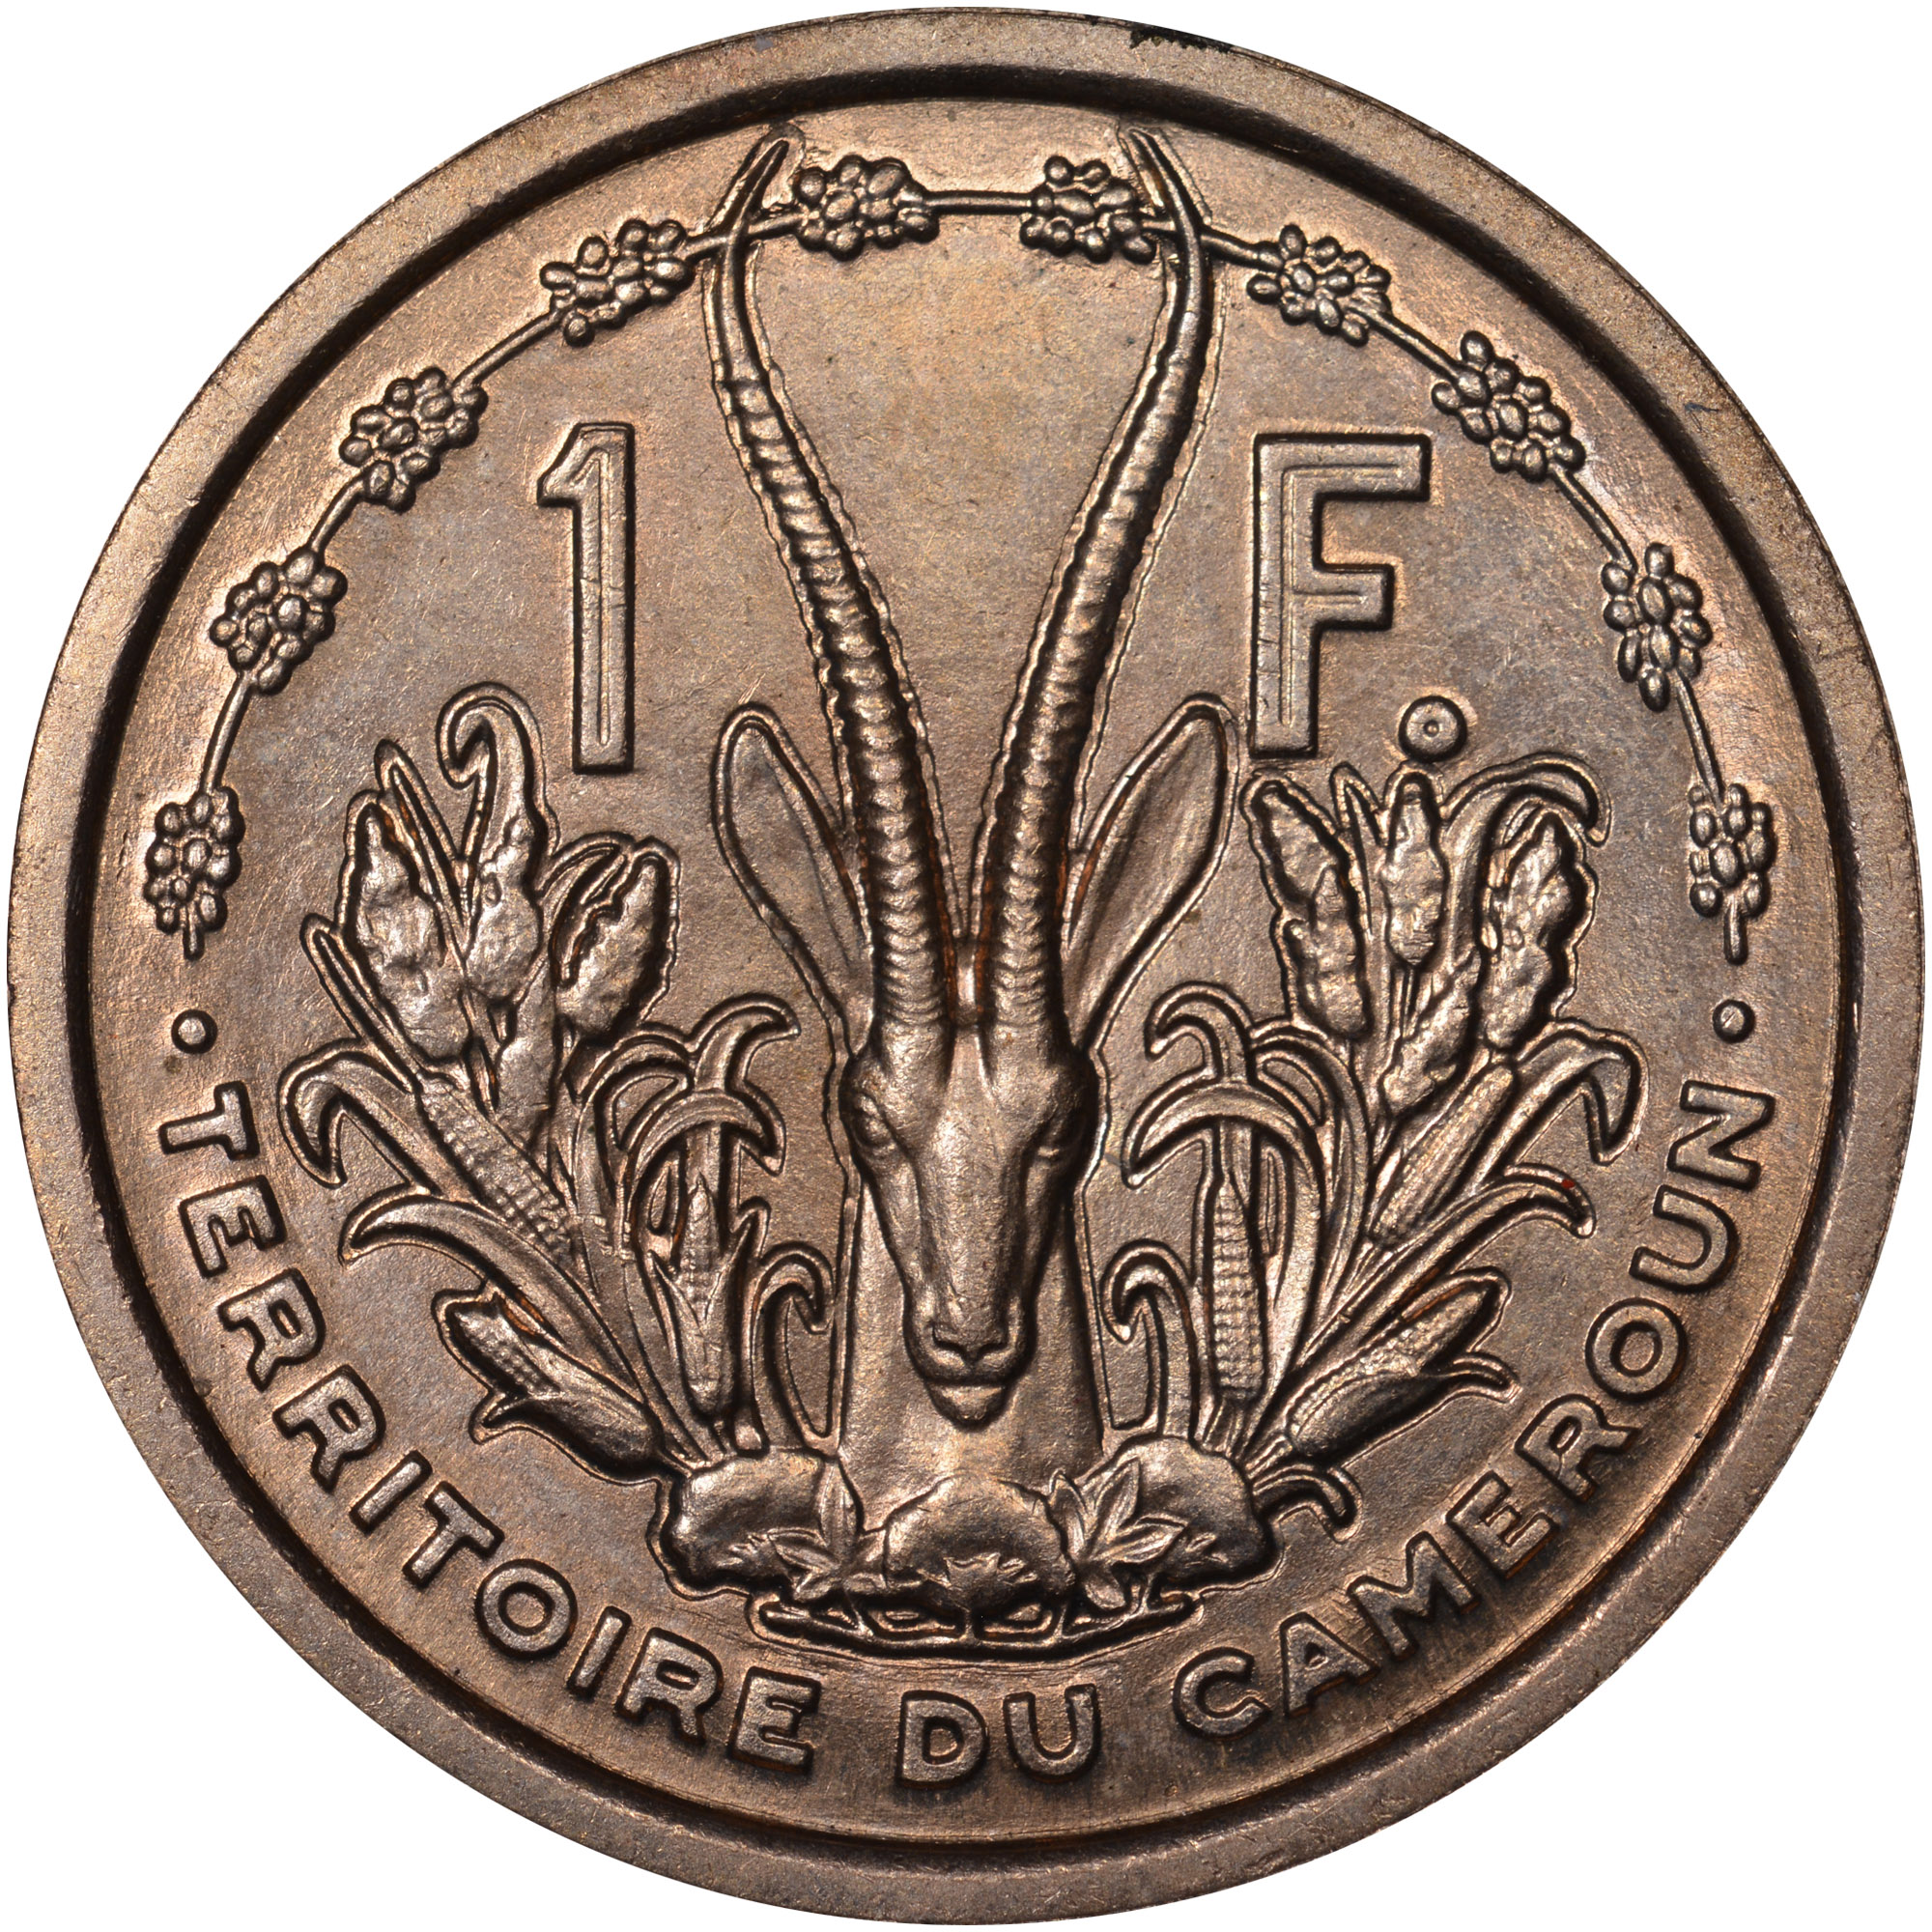 1948 Cameroon Franc reverse